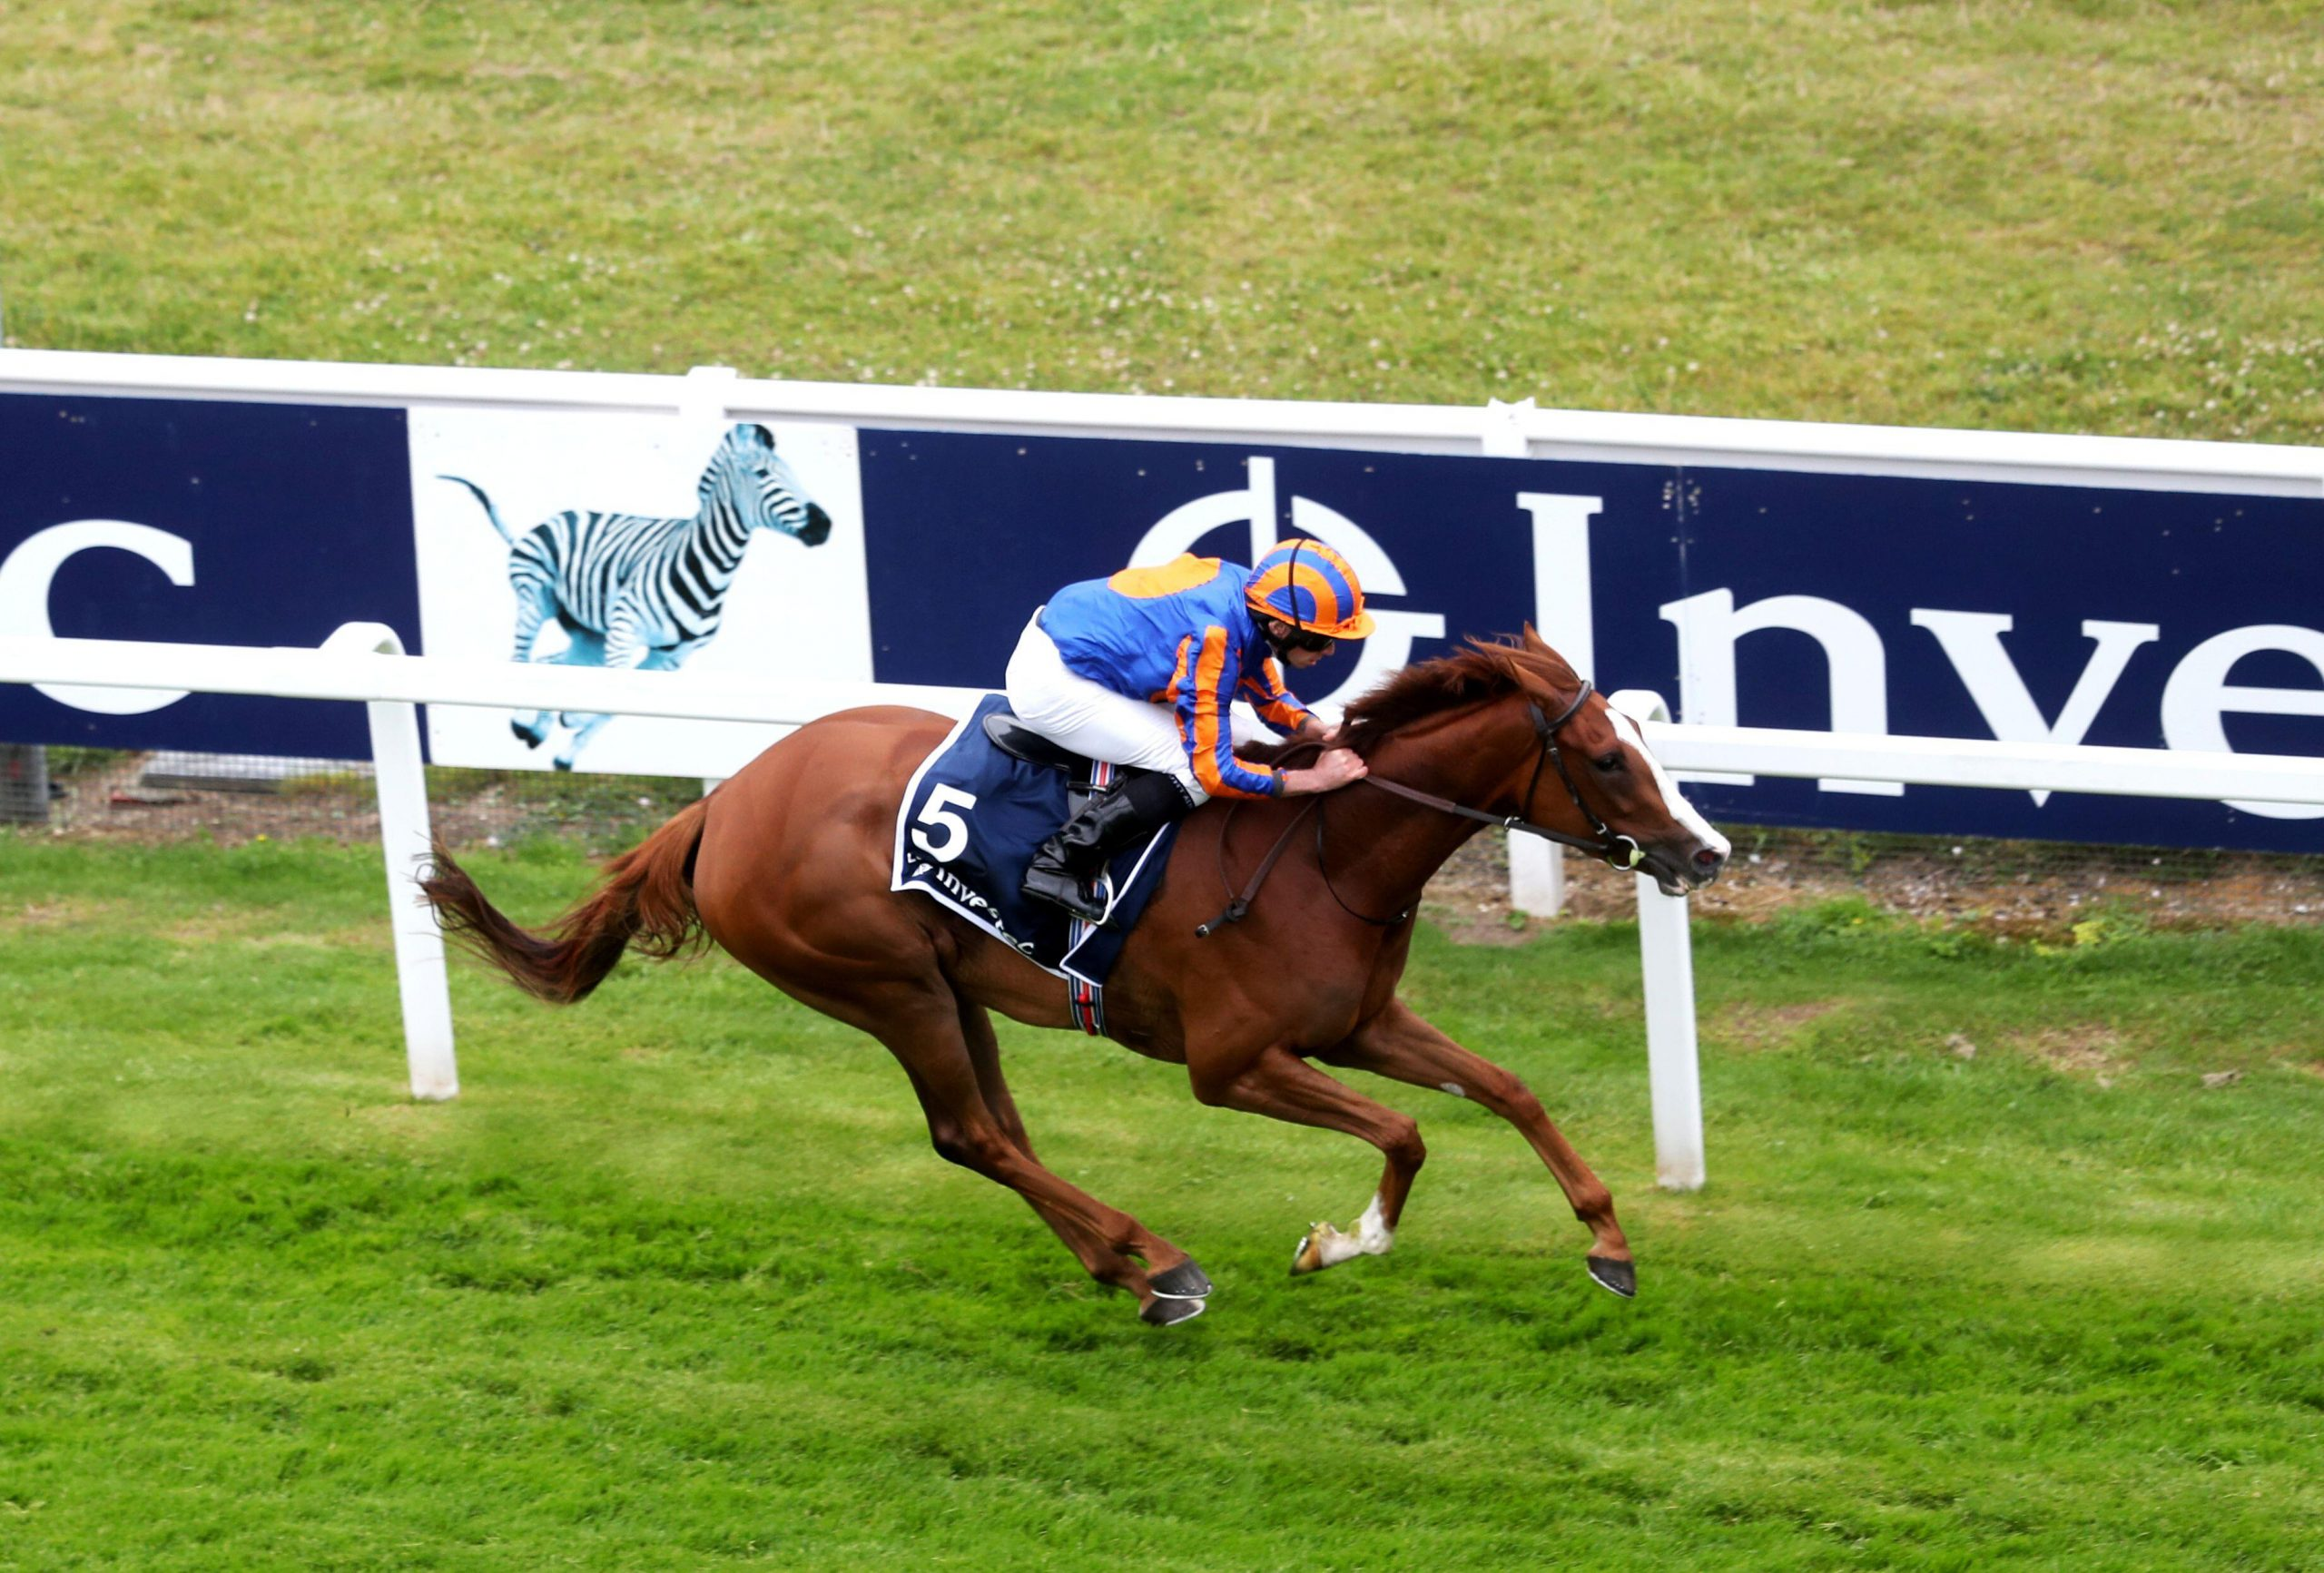 Horse Racing - Derby Festival - Epsom Downs Racecourse, Epsom, Britain - July 4, 2020 Love ridden by Ryan Moore wins the Investec Oaks, as racing resumed behind closed doors after the outbreak of the coronavirus disease (COVID-19) David Davies/Pool via